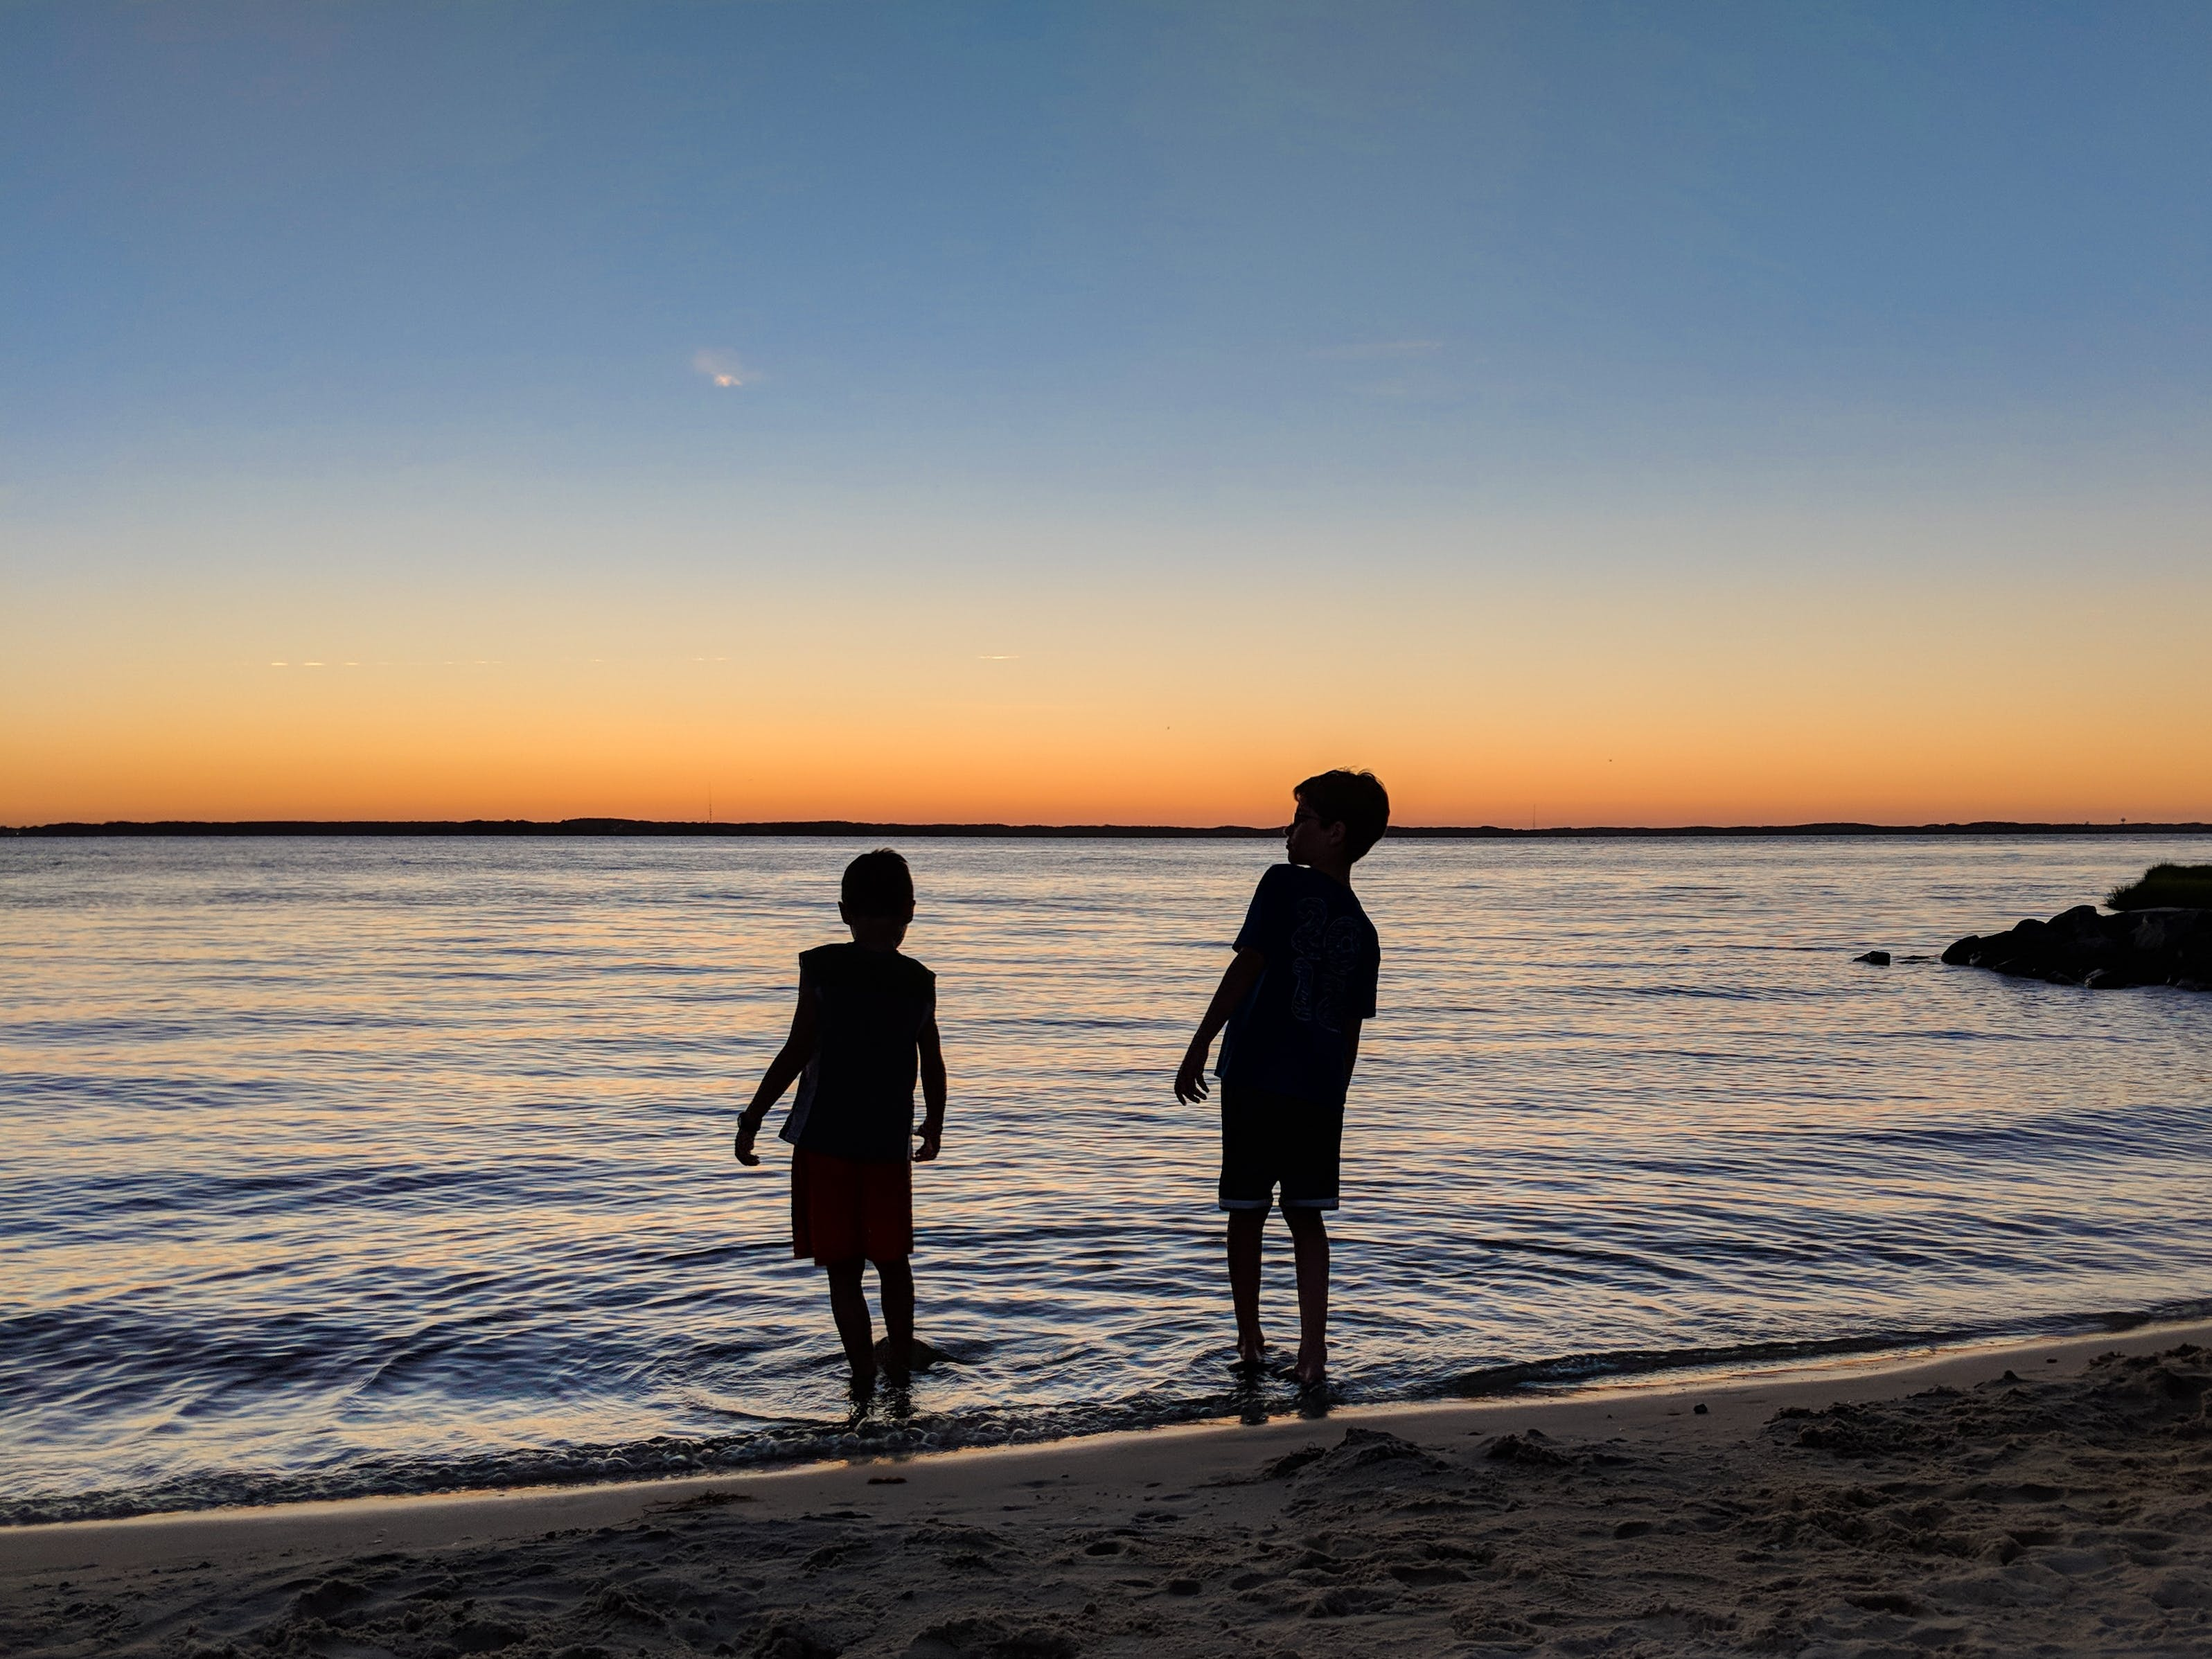 brothers, skipping rocks, sunset